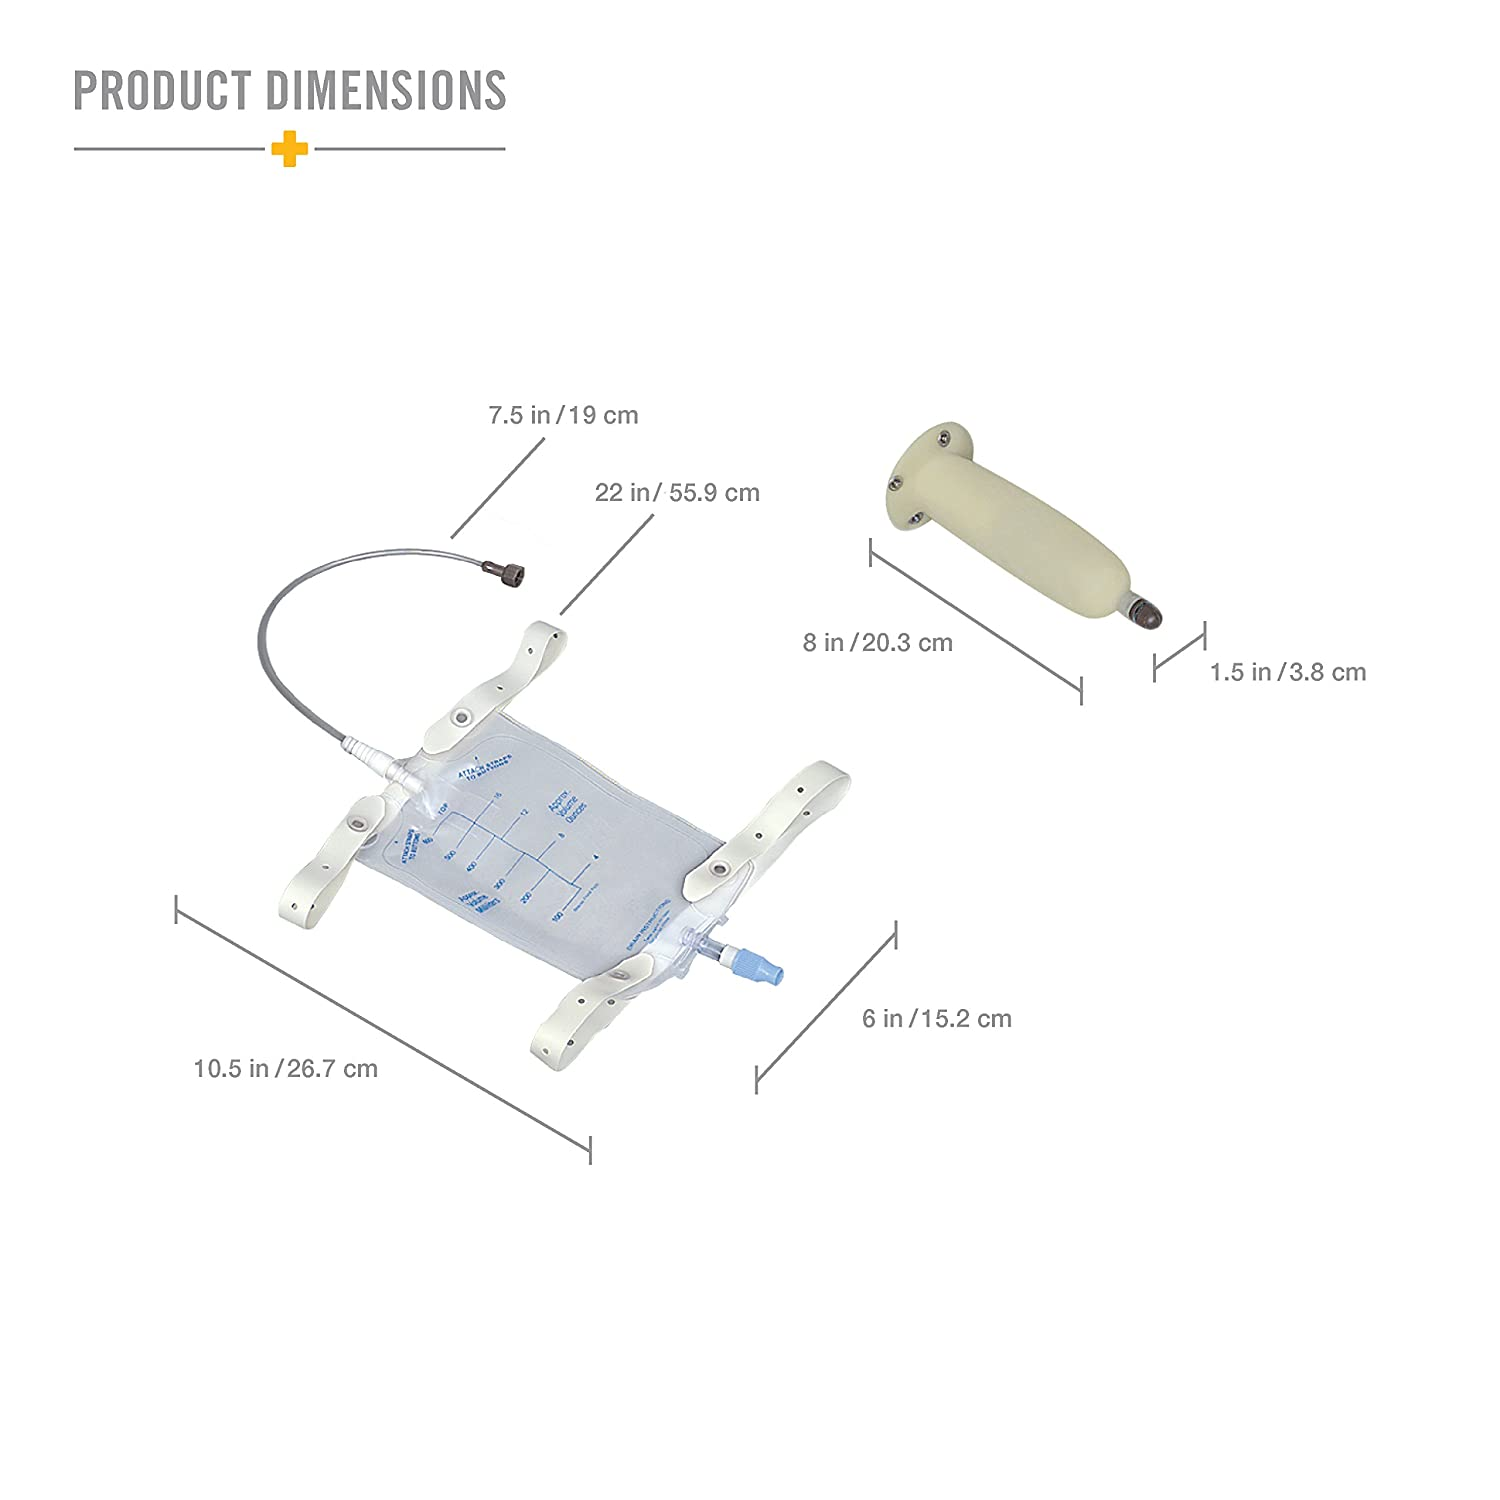 Buy Duro Med Suspensory Urinal One Size Fits All 7752 Online At Low American Standard Wiring Diagram Prices In India